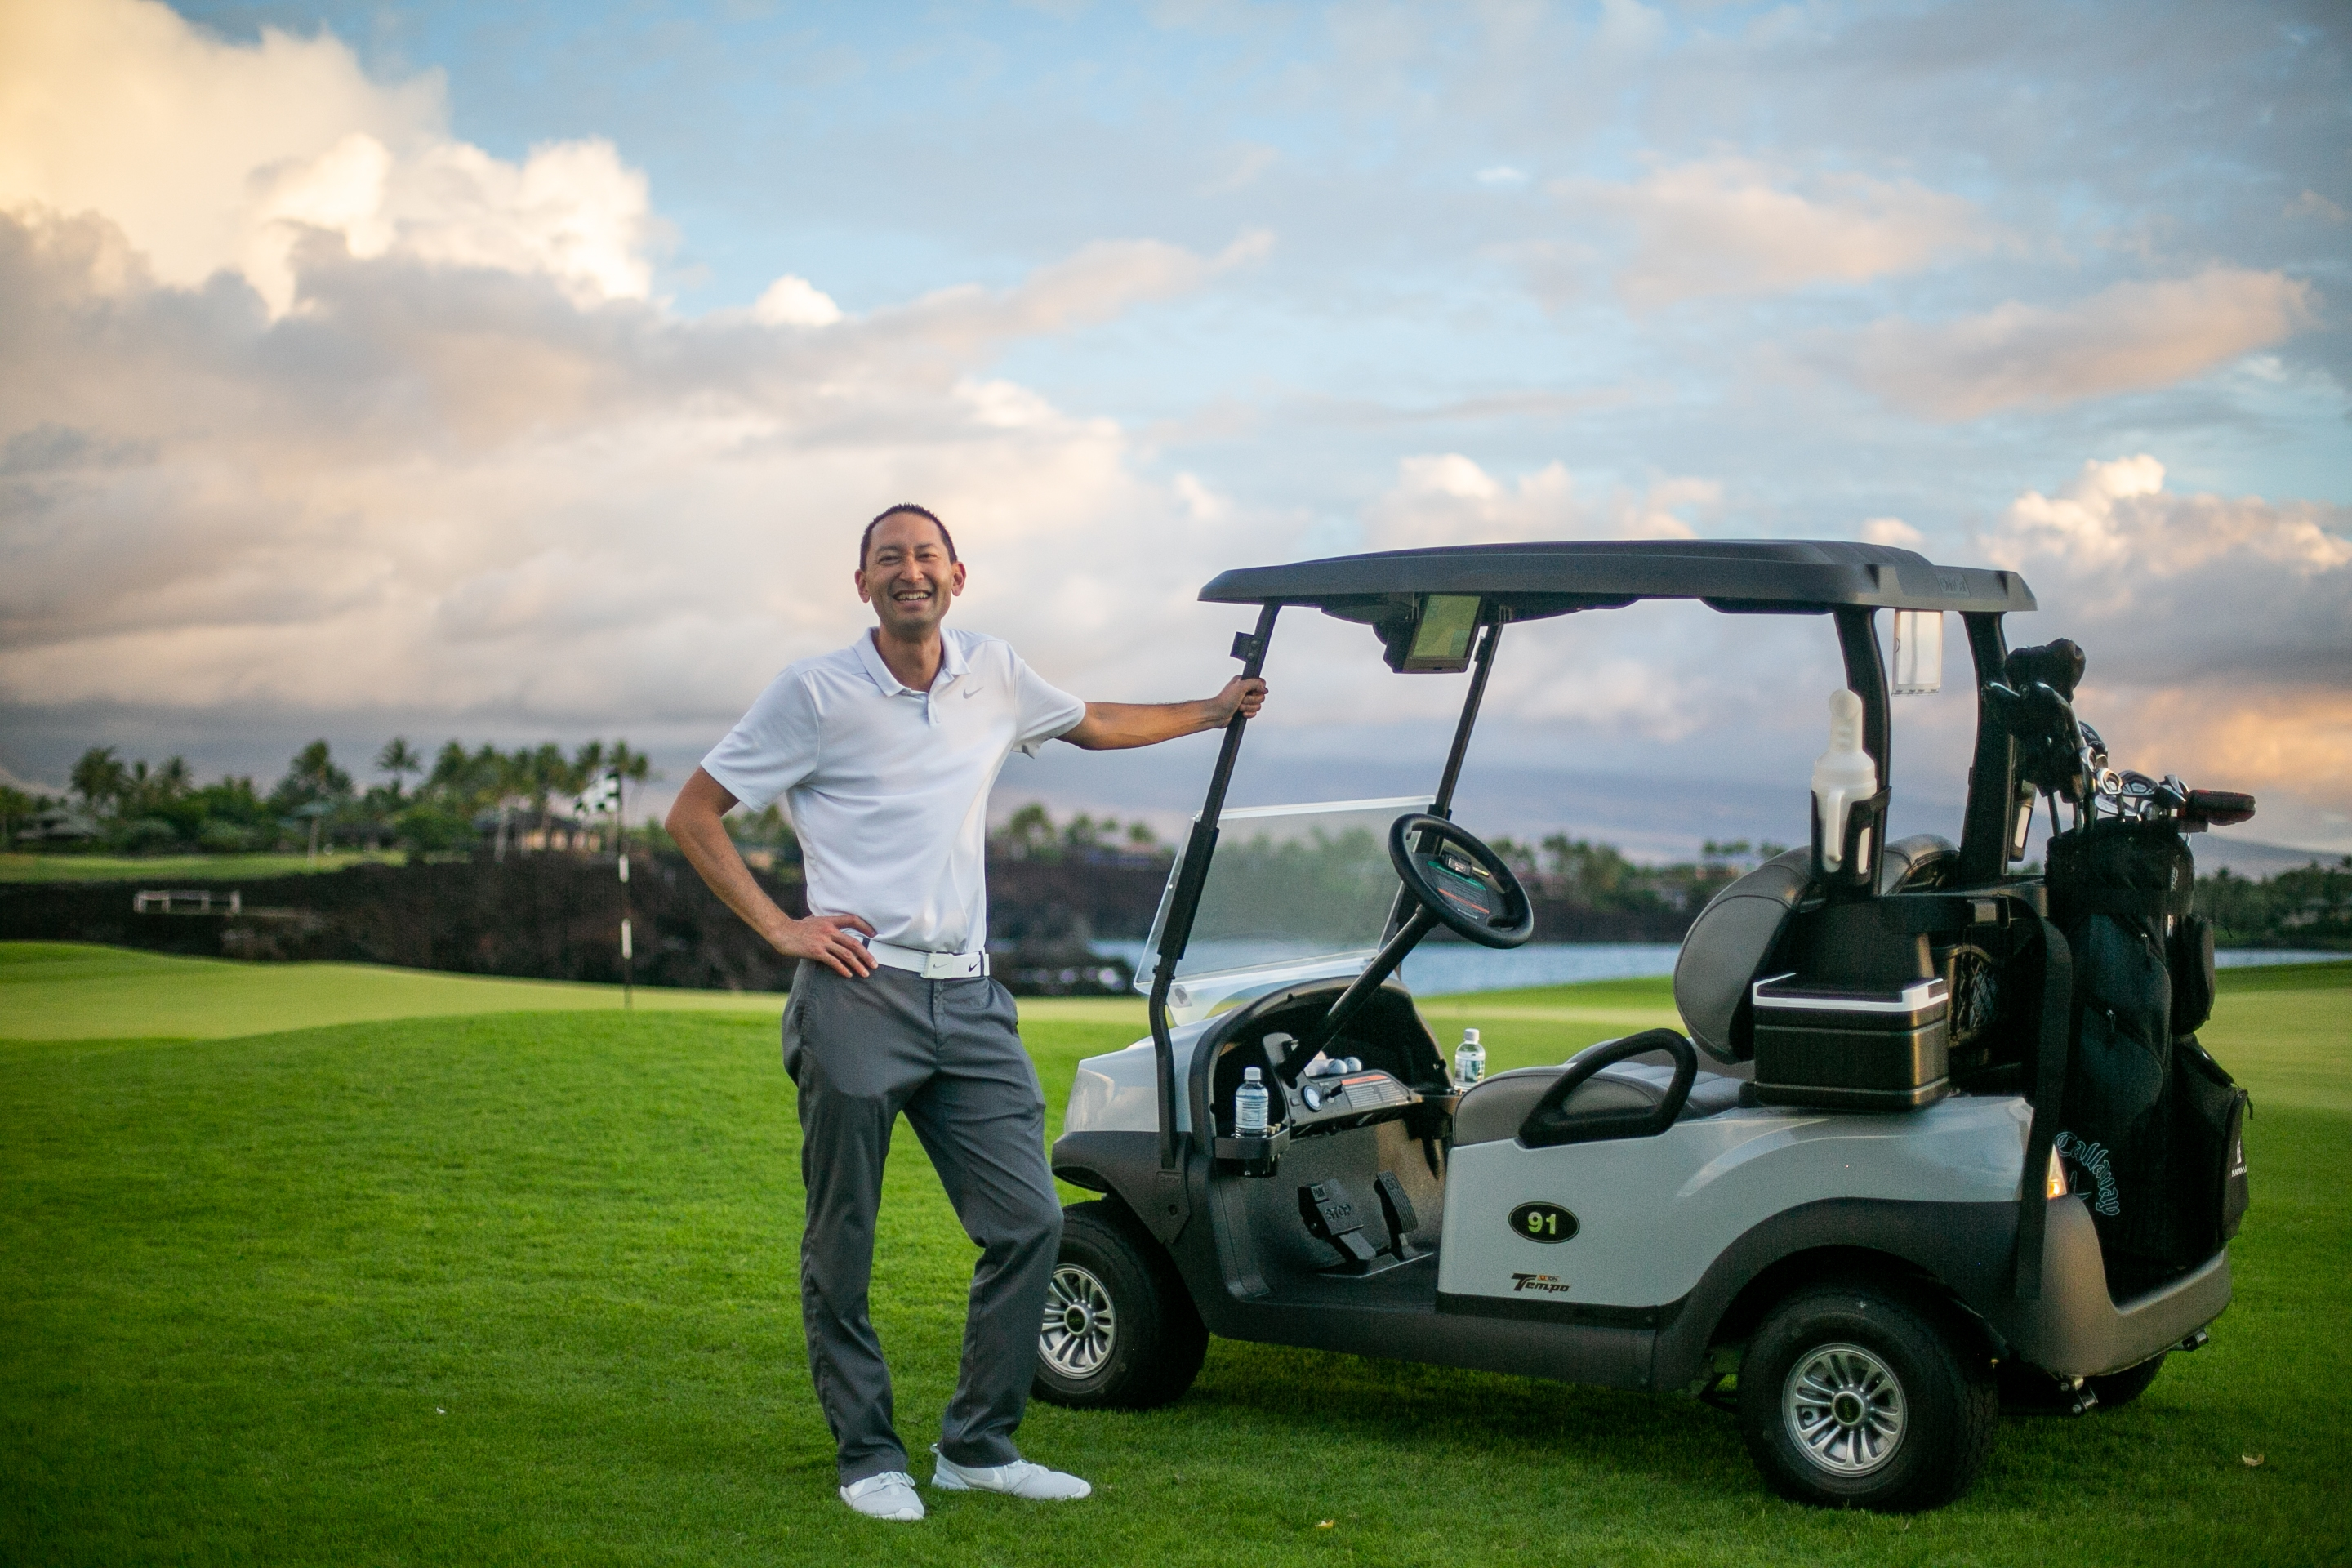 MAUNA LANI GOLF NAMES CHRIS NODA DIRECTOR OF GOLF